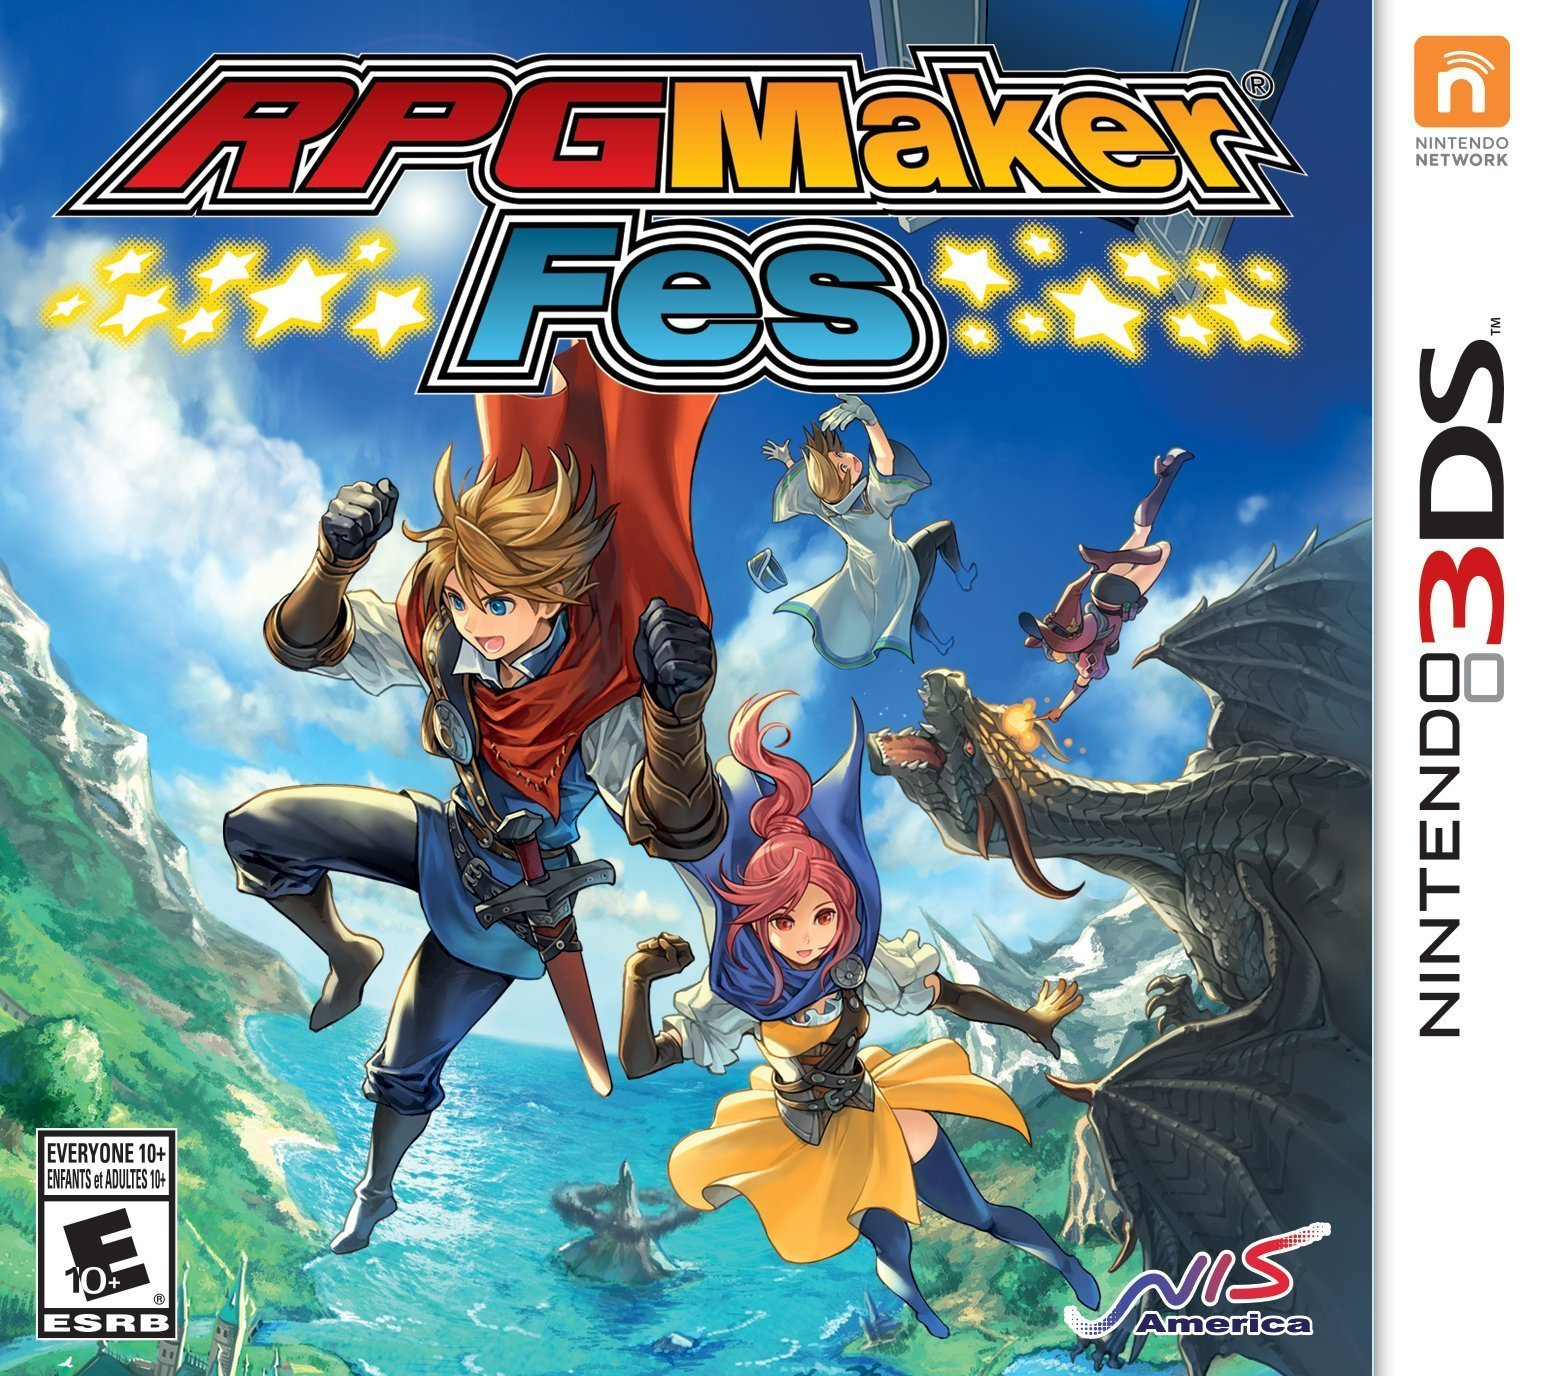 Amazon com: RPG Maker Fes - Nintendo 3DS (Renewed): Video Games